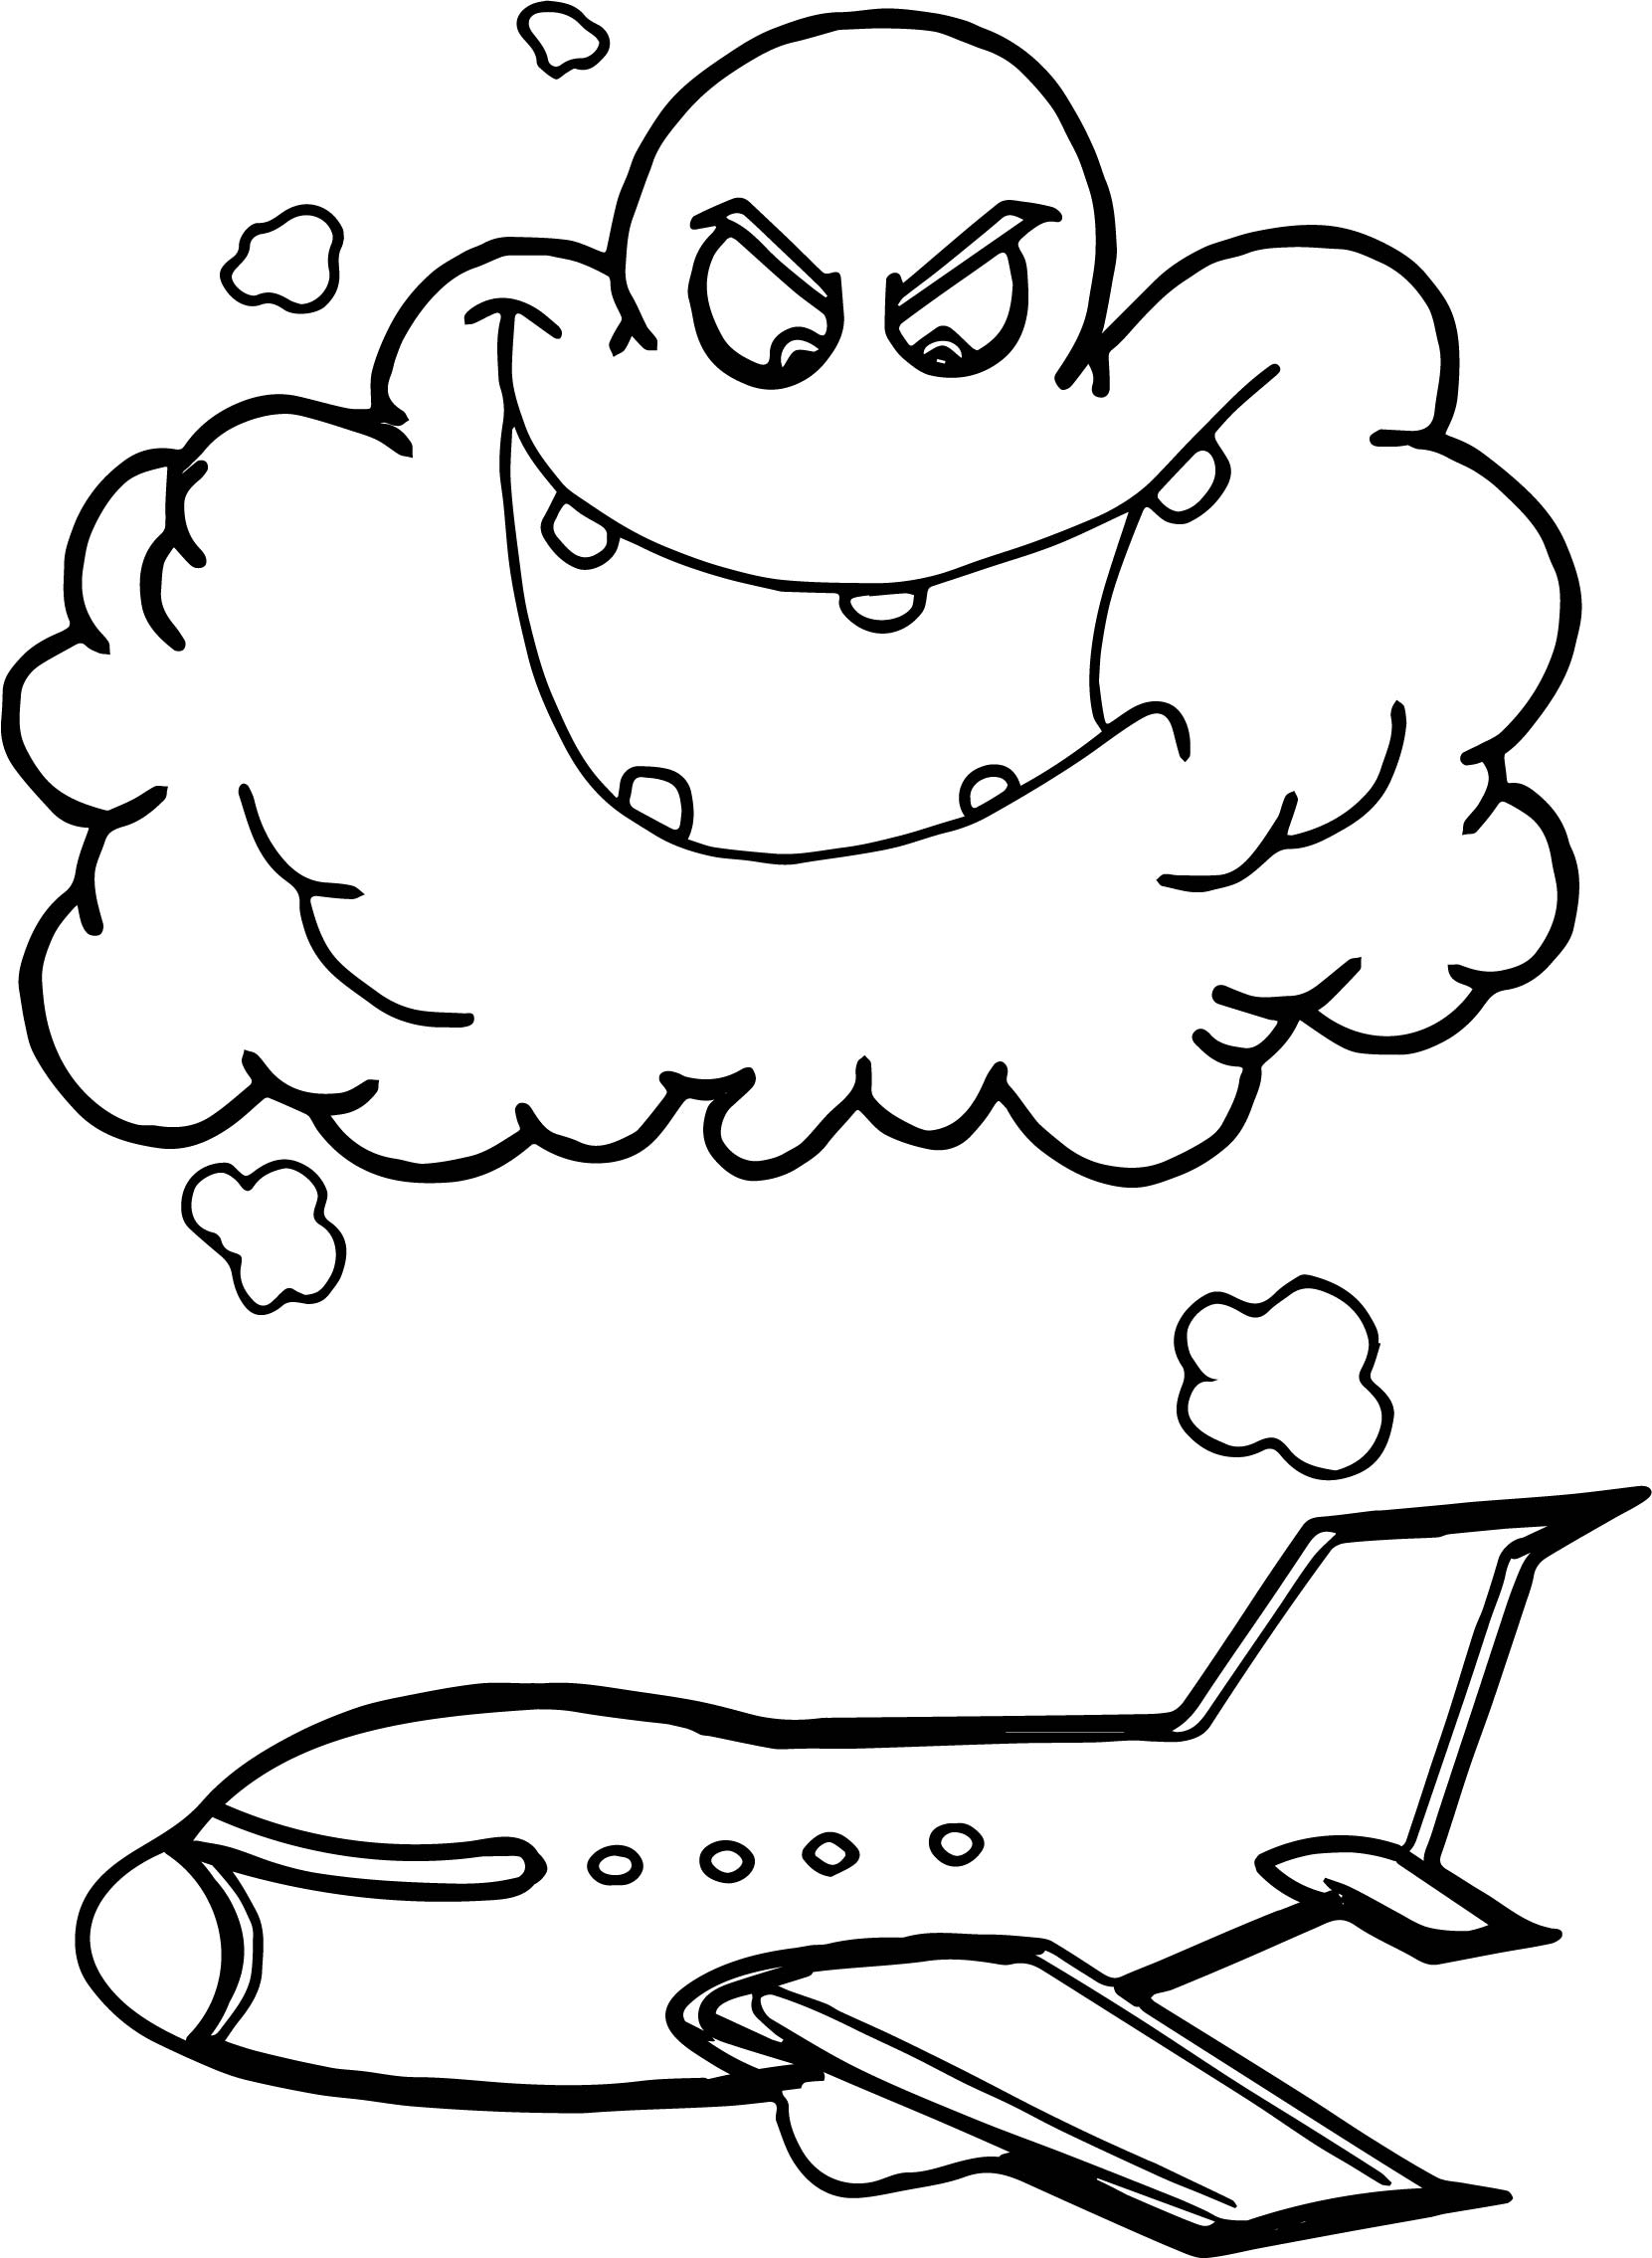 Airplane Flying Through Storm Clouds Cartoon Coloring Page